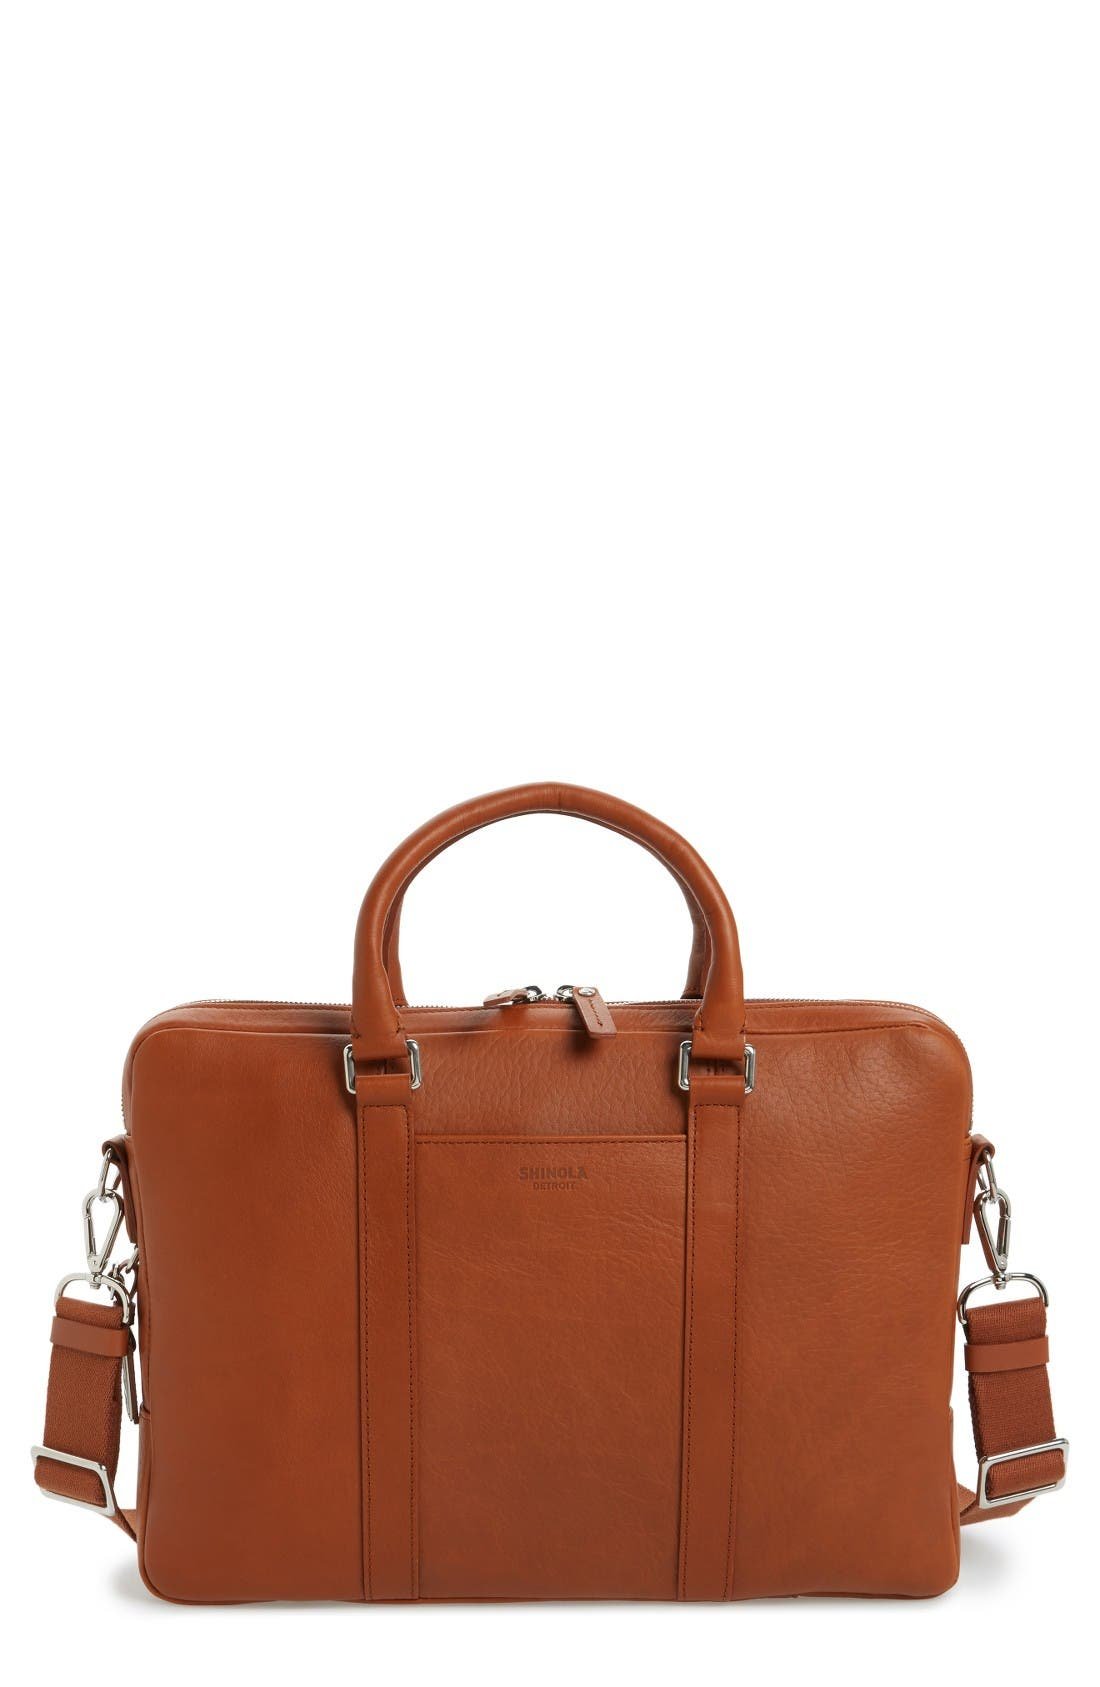 Alternate Image 1 Selected - Shinola Signature Leather Briefcase